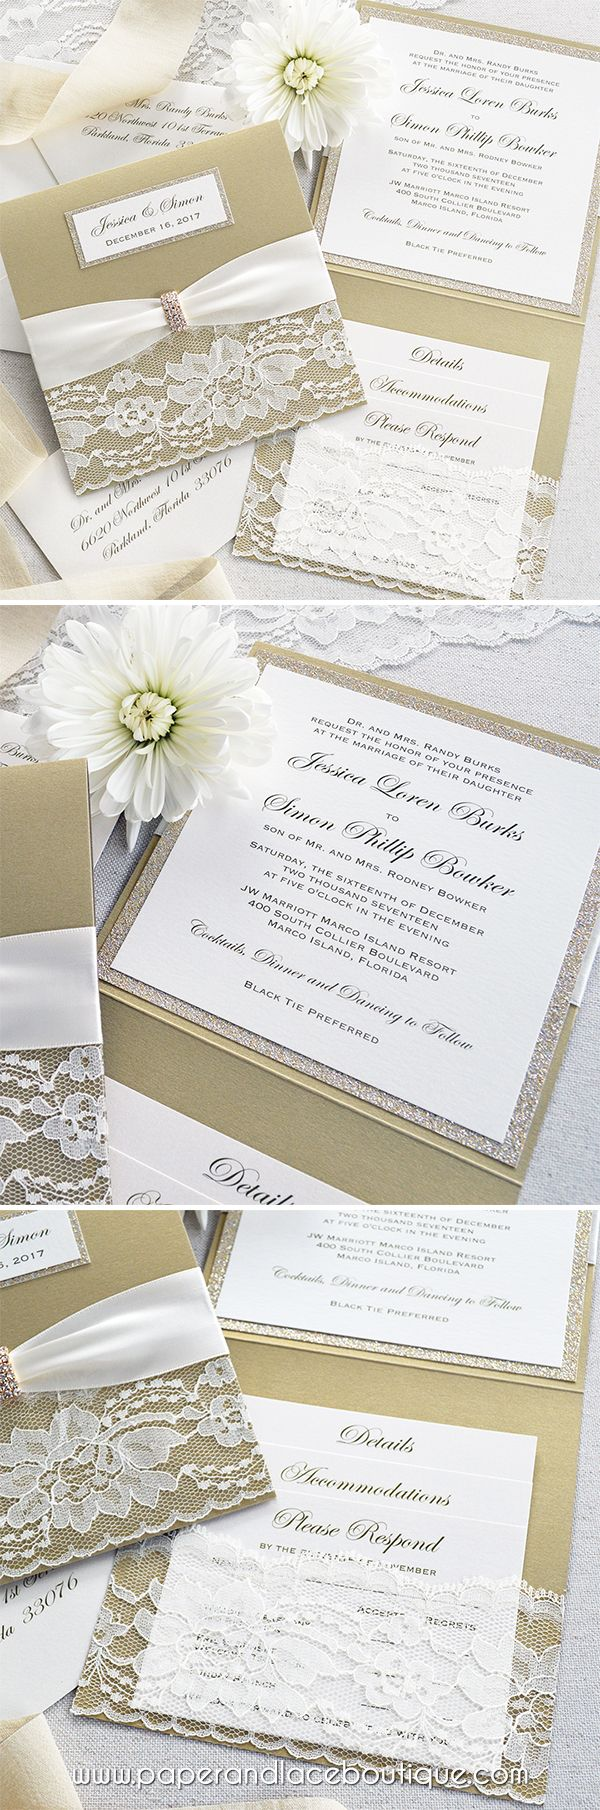 96 Best Paper Lace Invitations And Stationery Images On Pinterest